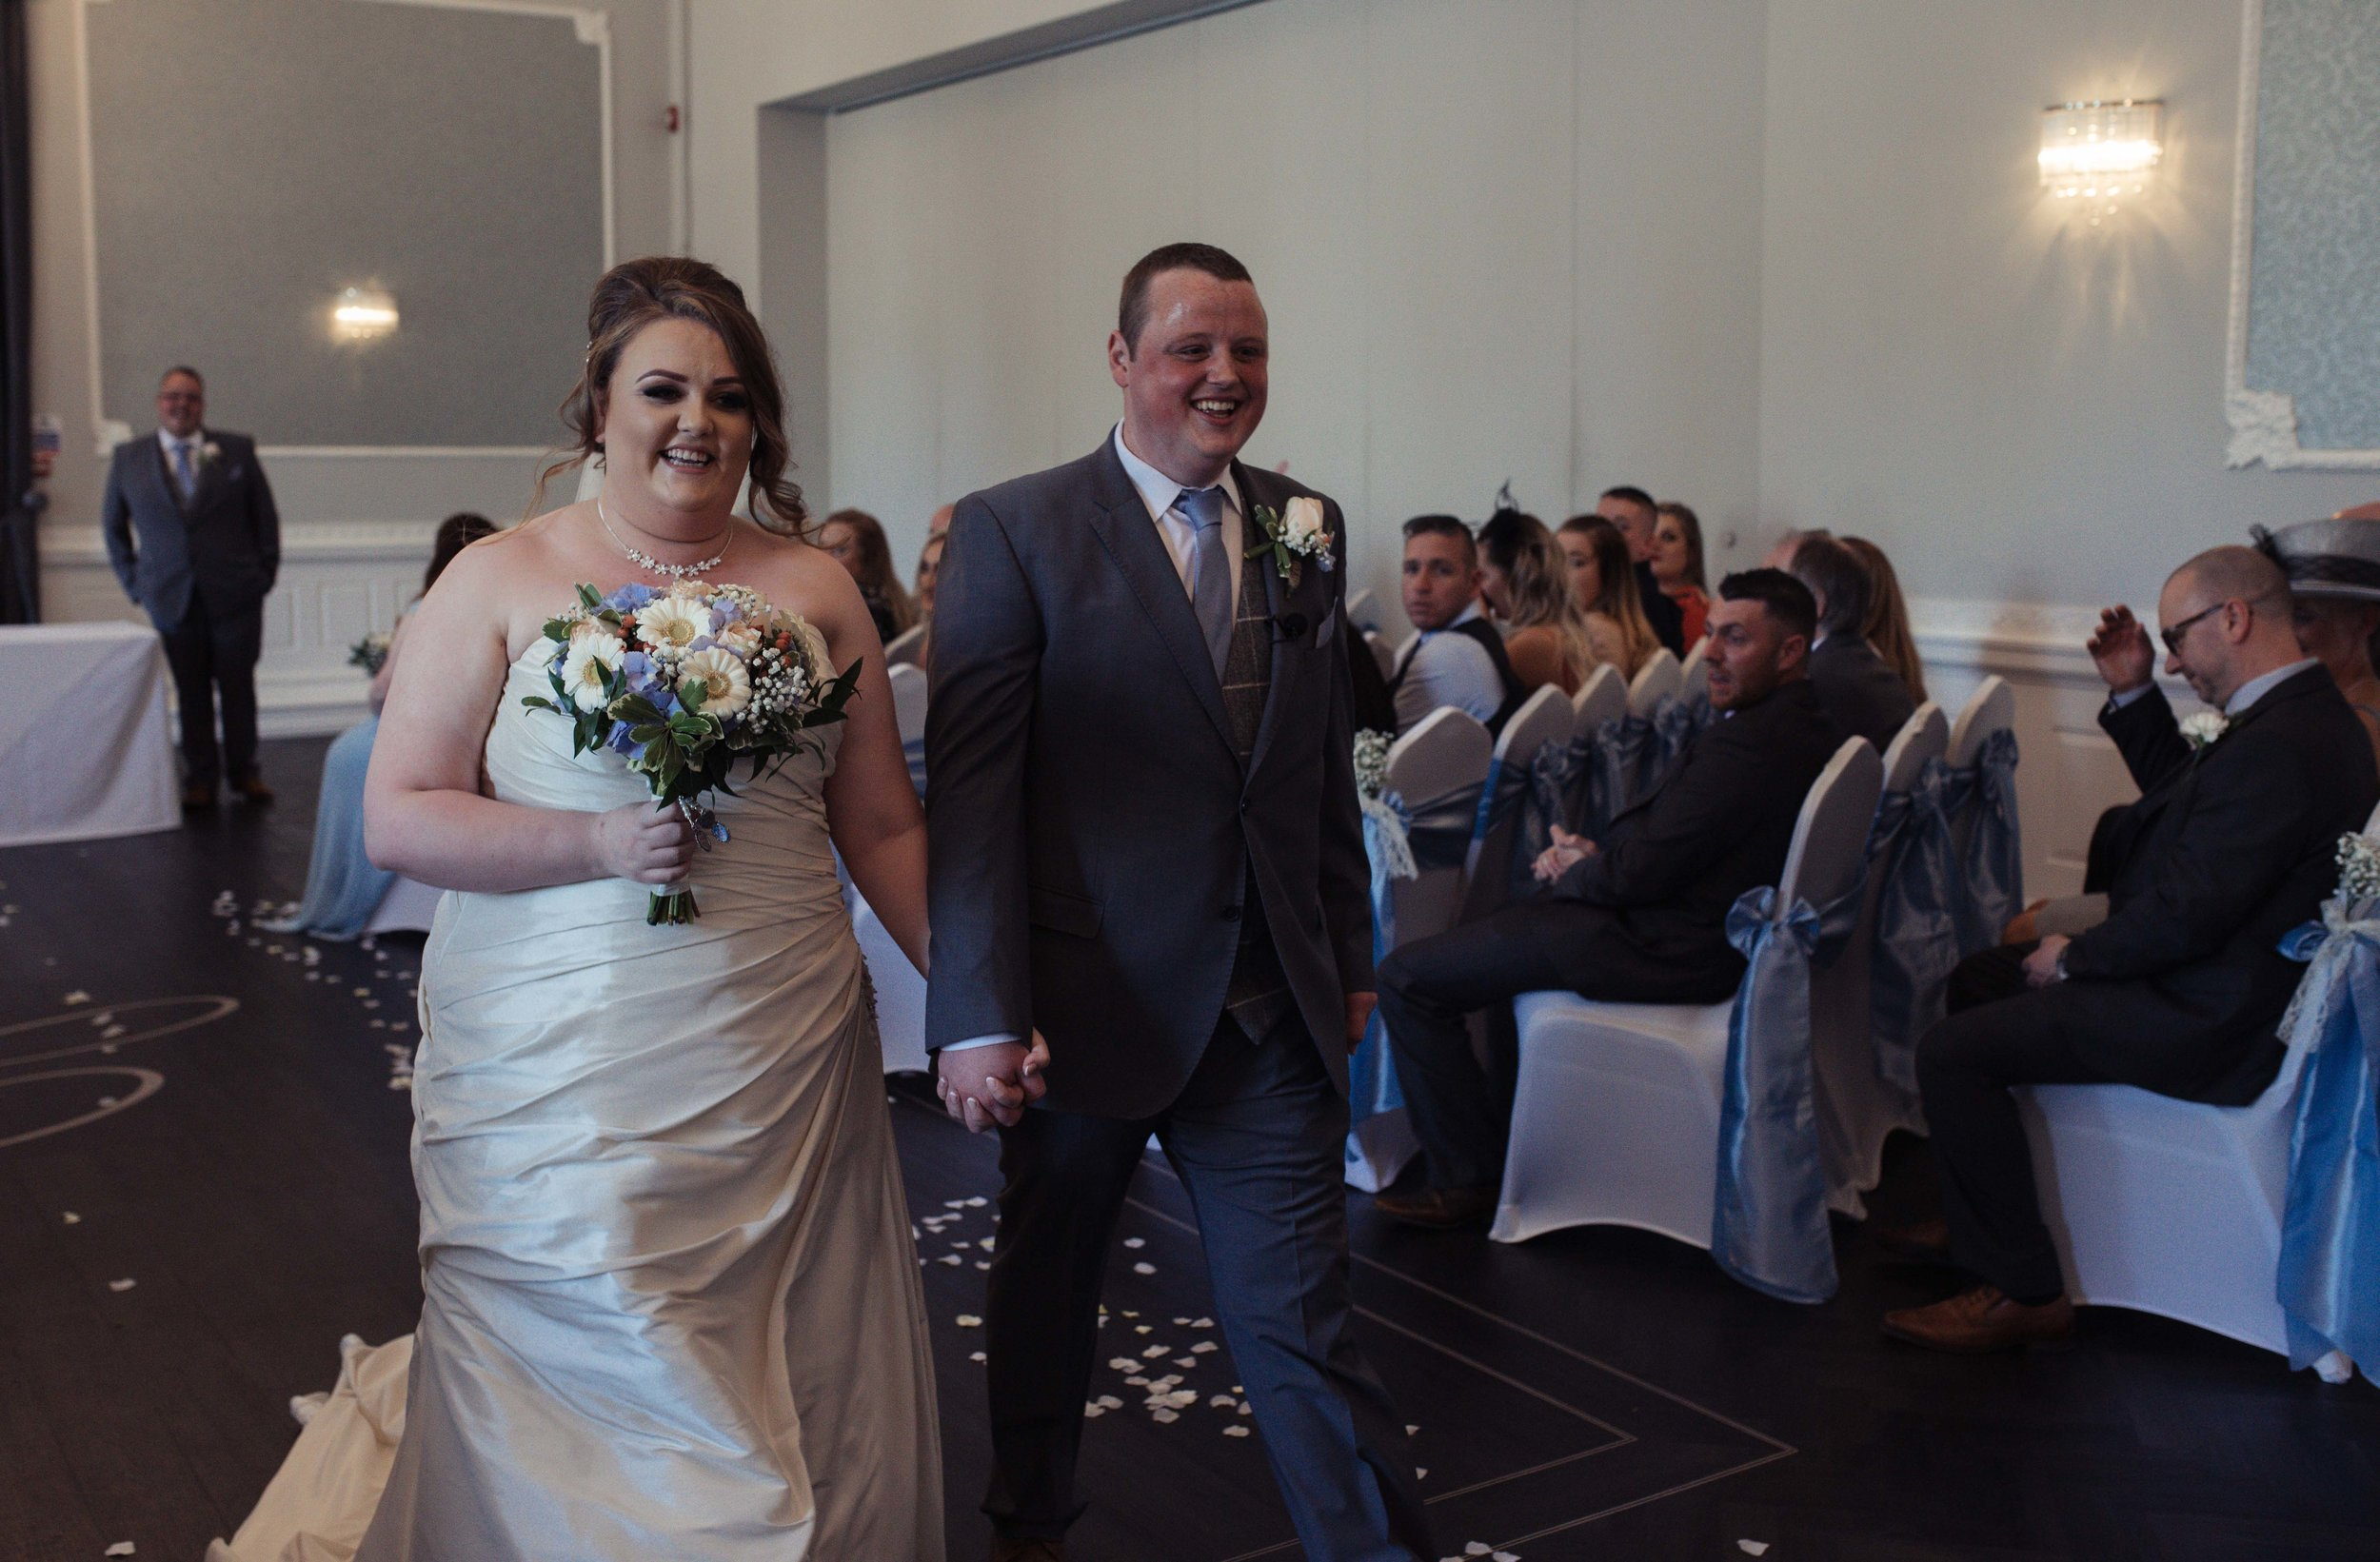 Smiling bride and groom walk out of the ceremony venue together, holding hands